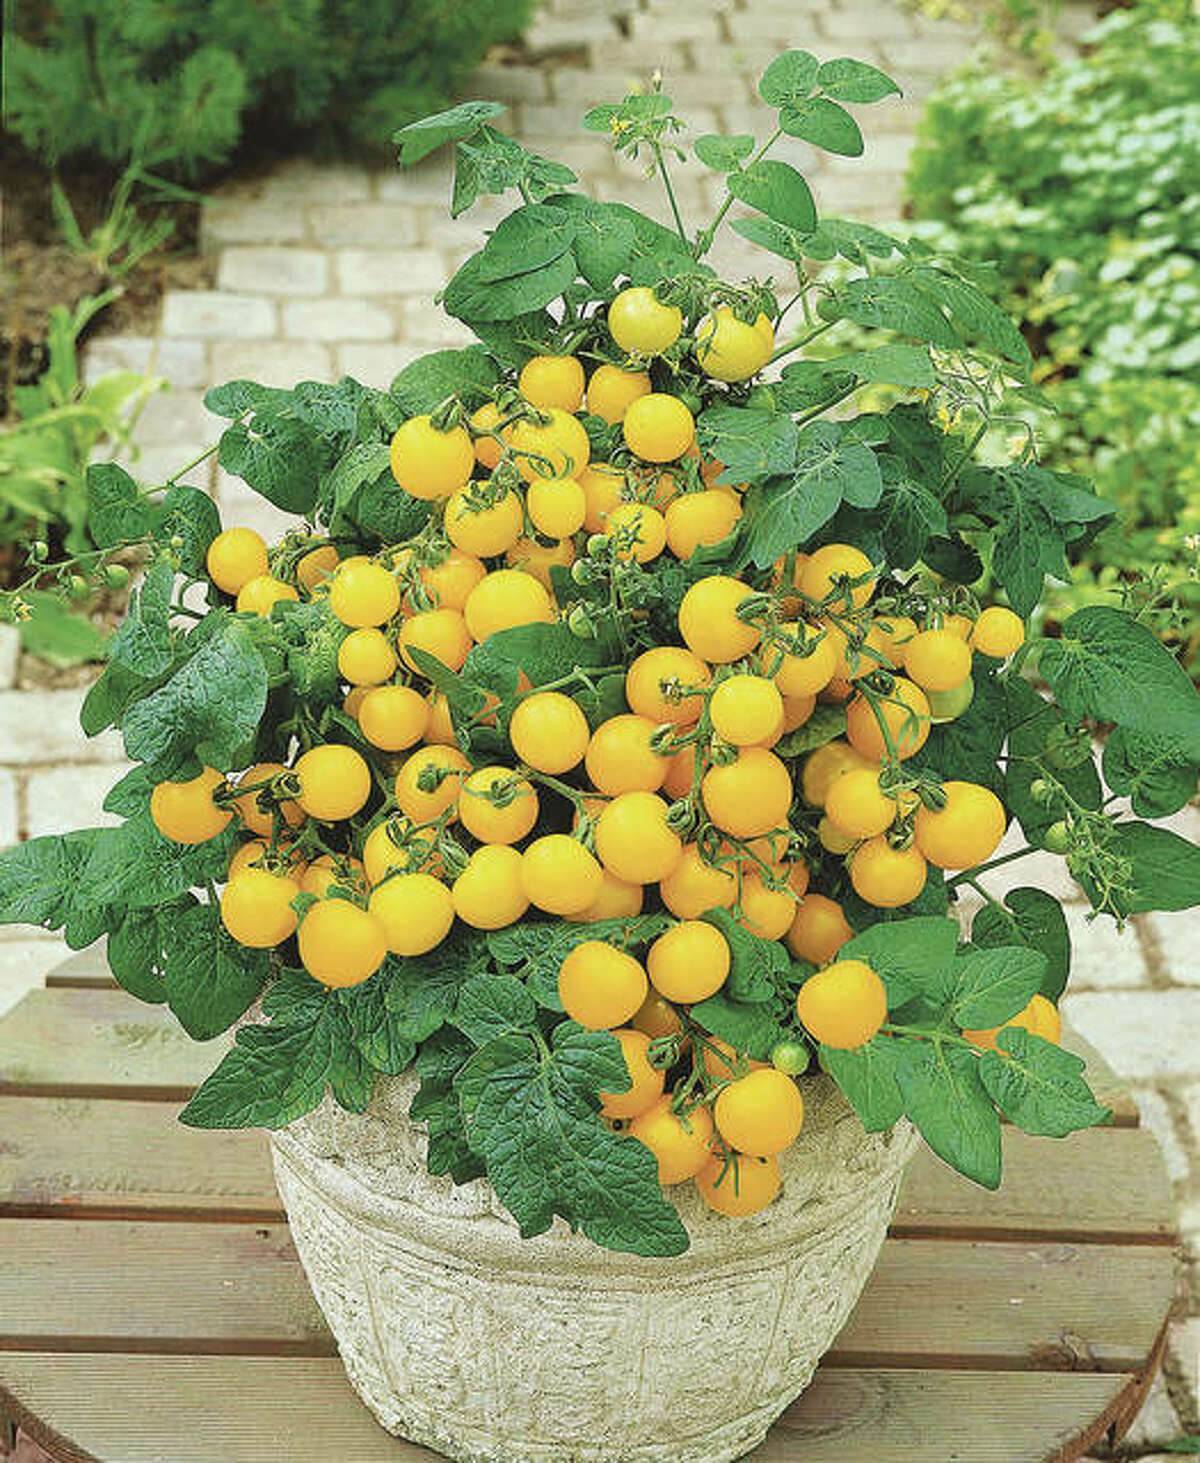 All-America Selections winner Patio Choice Yellow Sweet is a compact tomato variety meant for containers, patios or balconies.